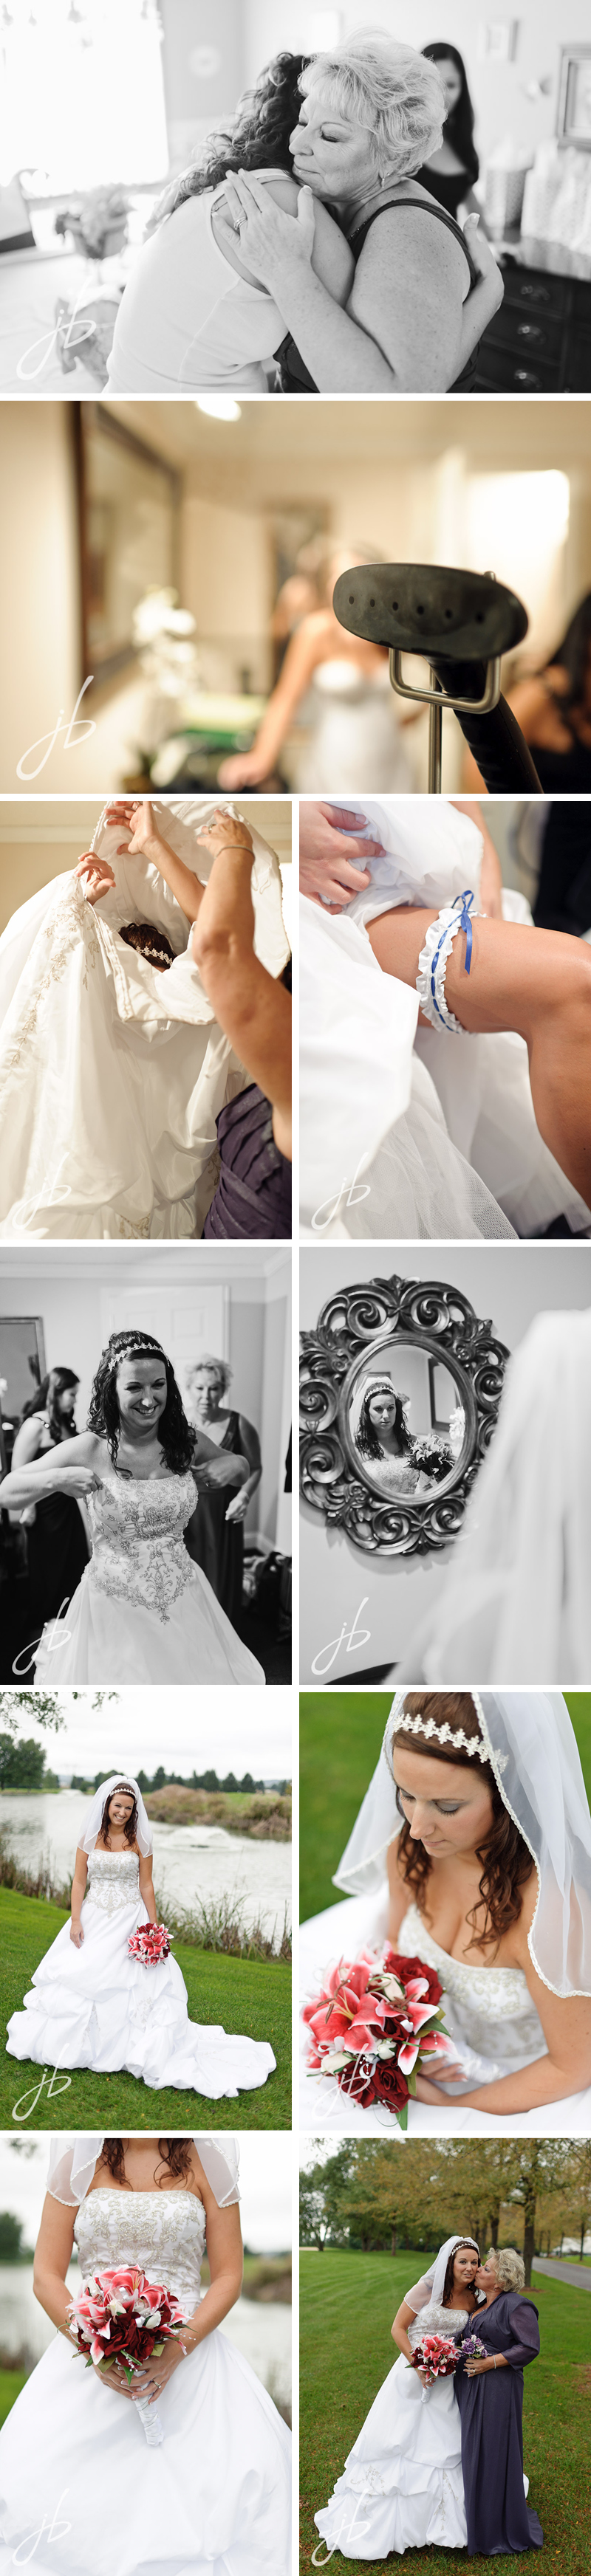 Lancaster PA wedding photography by Jeremy Bischoff Photography